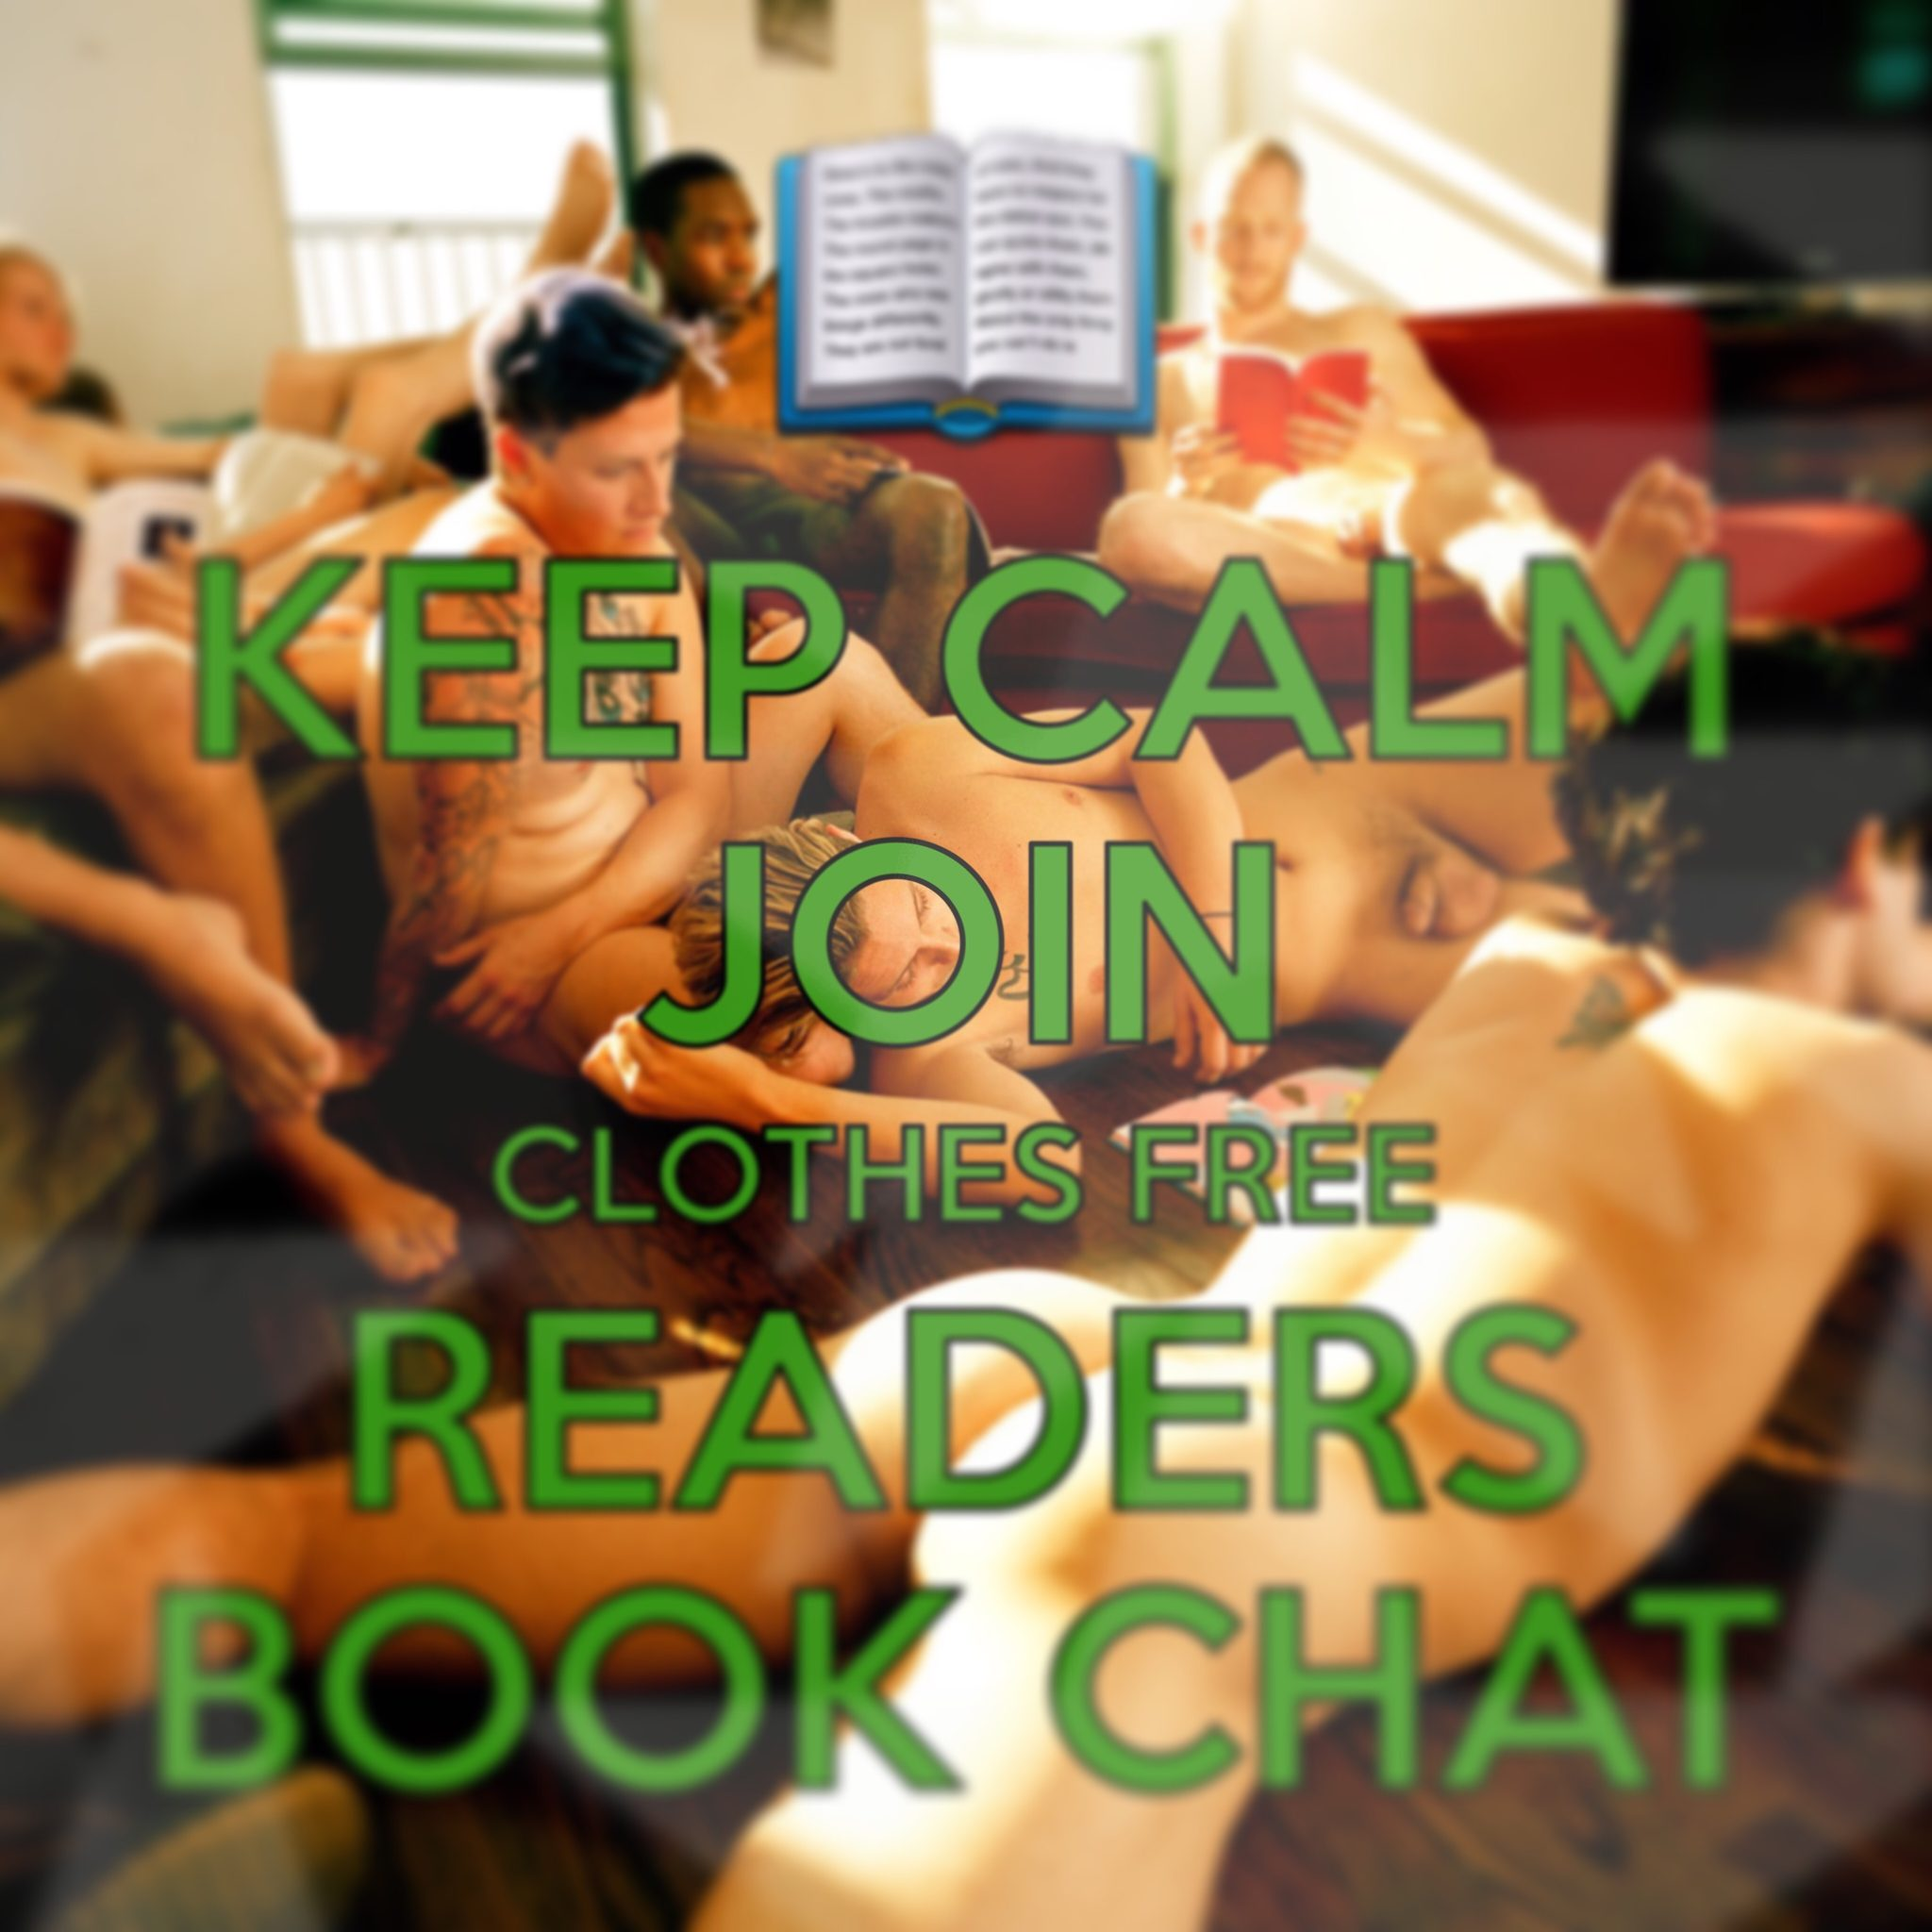 Join th clothes free readers book chat